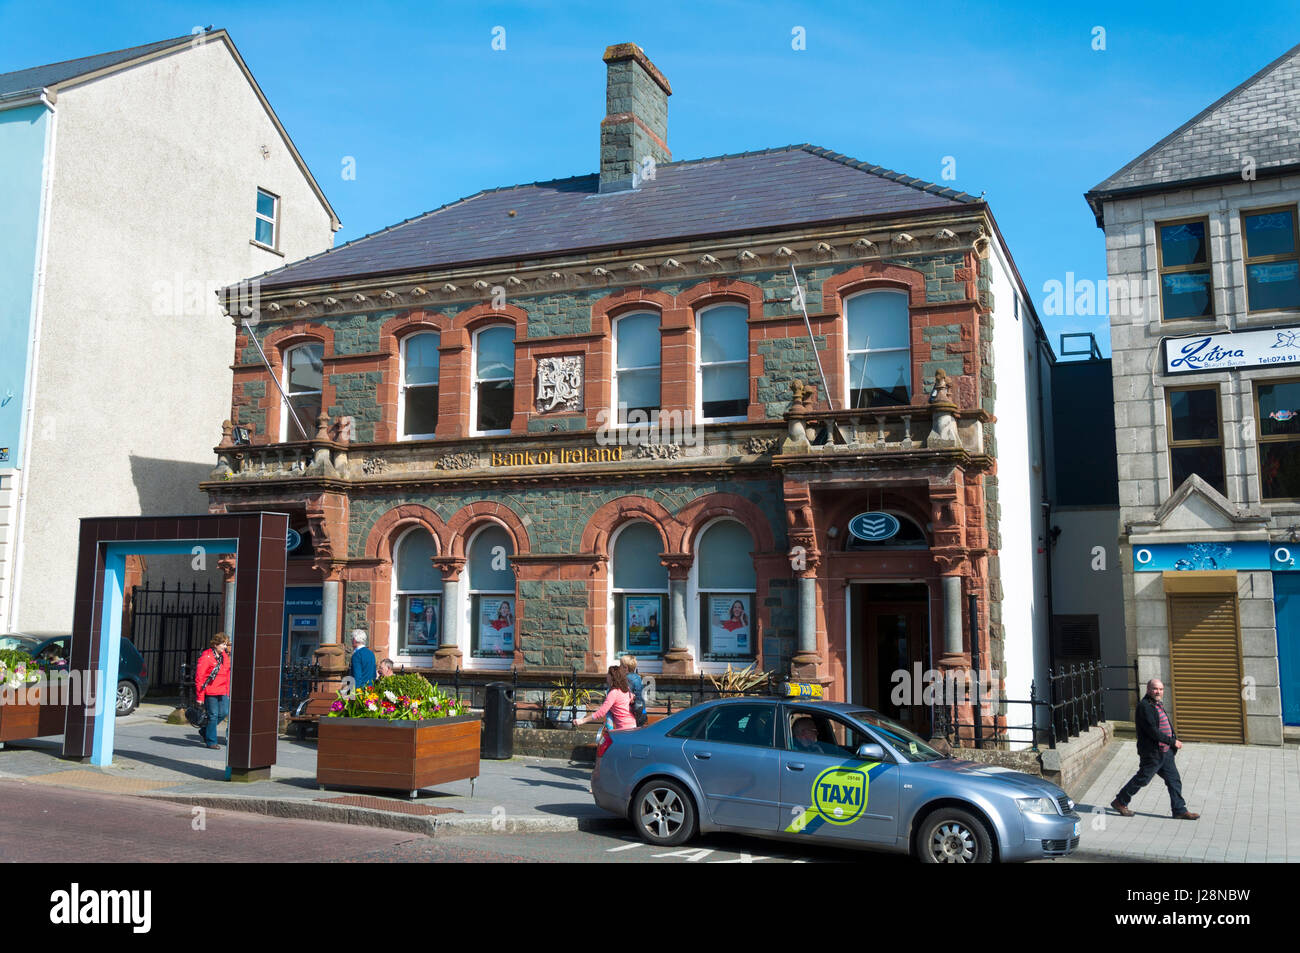 Bank of Ireland building in Letterkenny, County Donegal, Ireland - Stock Image